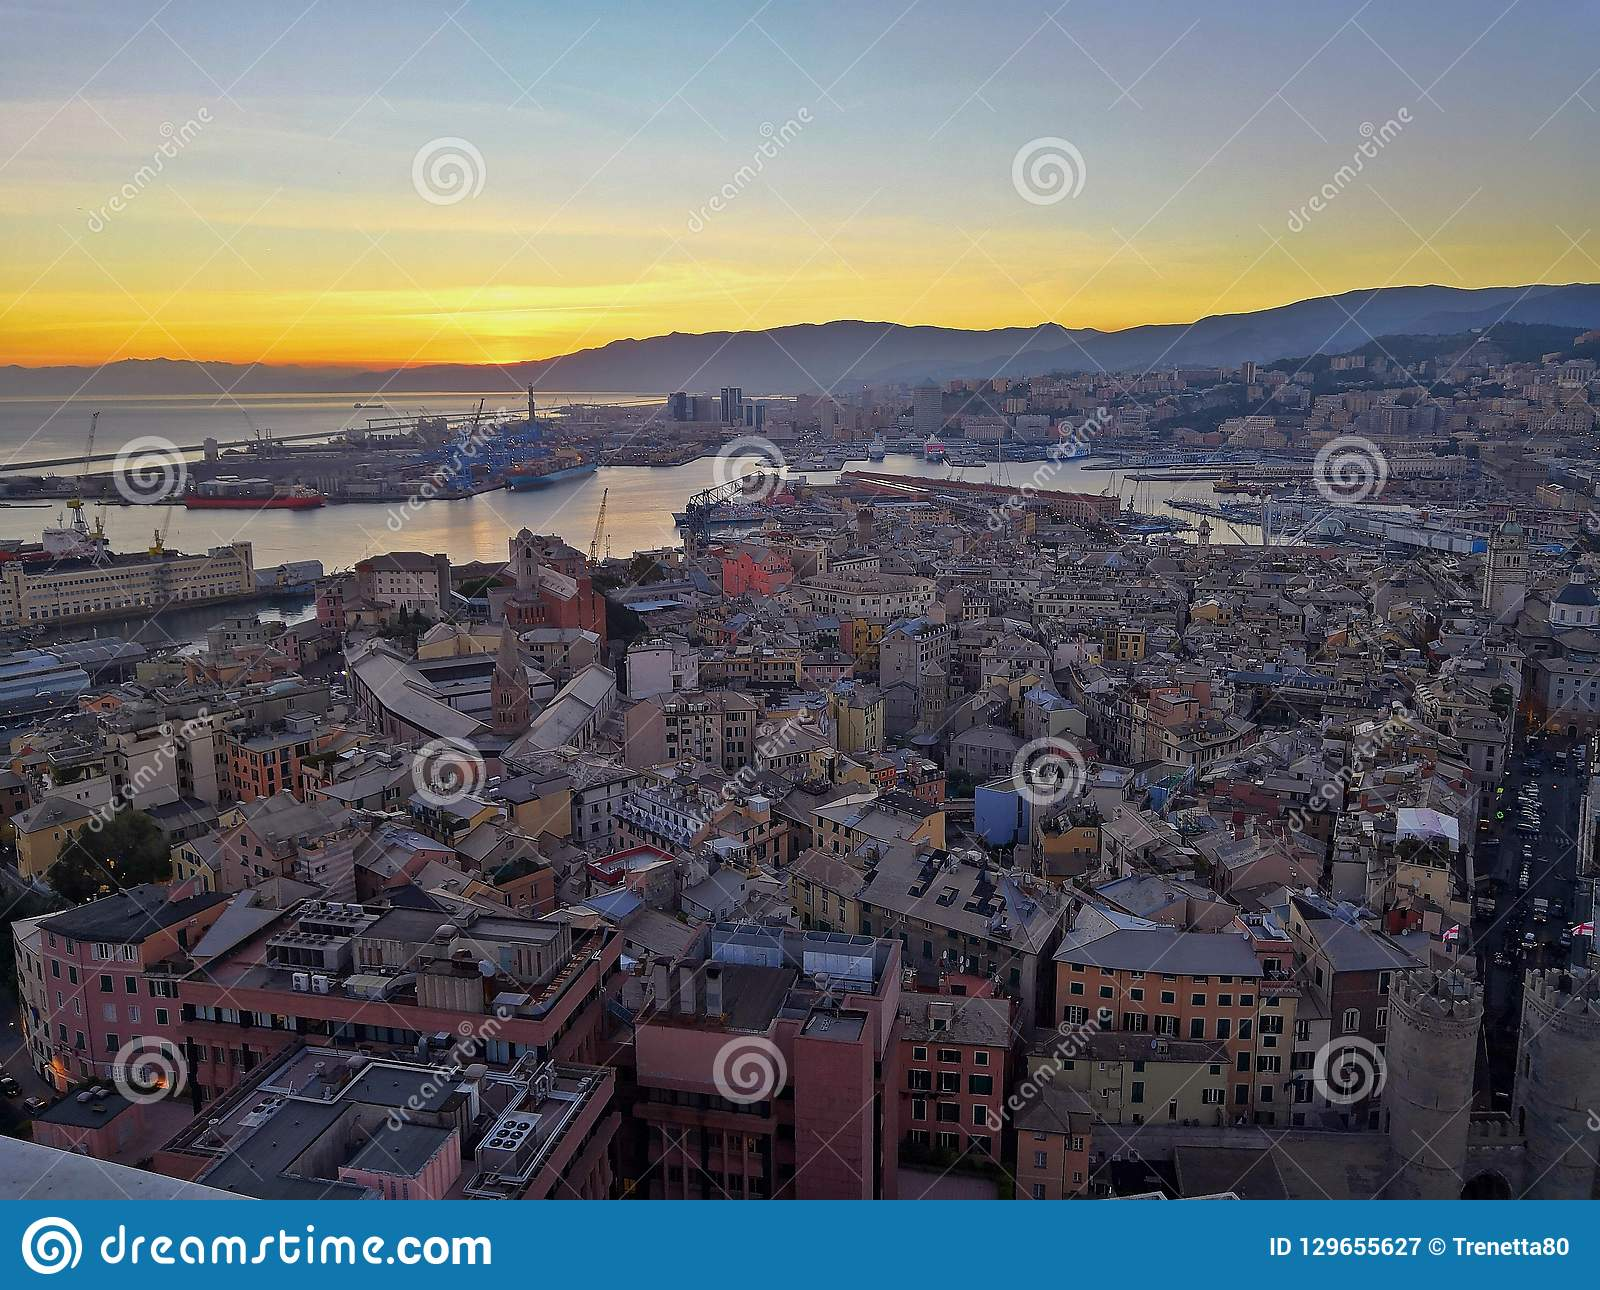 Genoa Landscape From Terrazza Colombo Stock Image Image Of